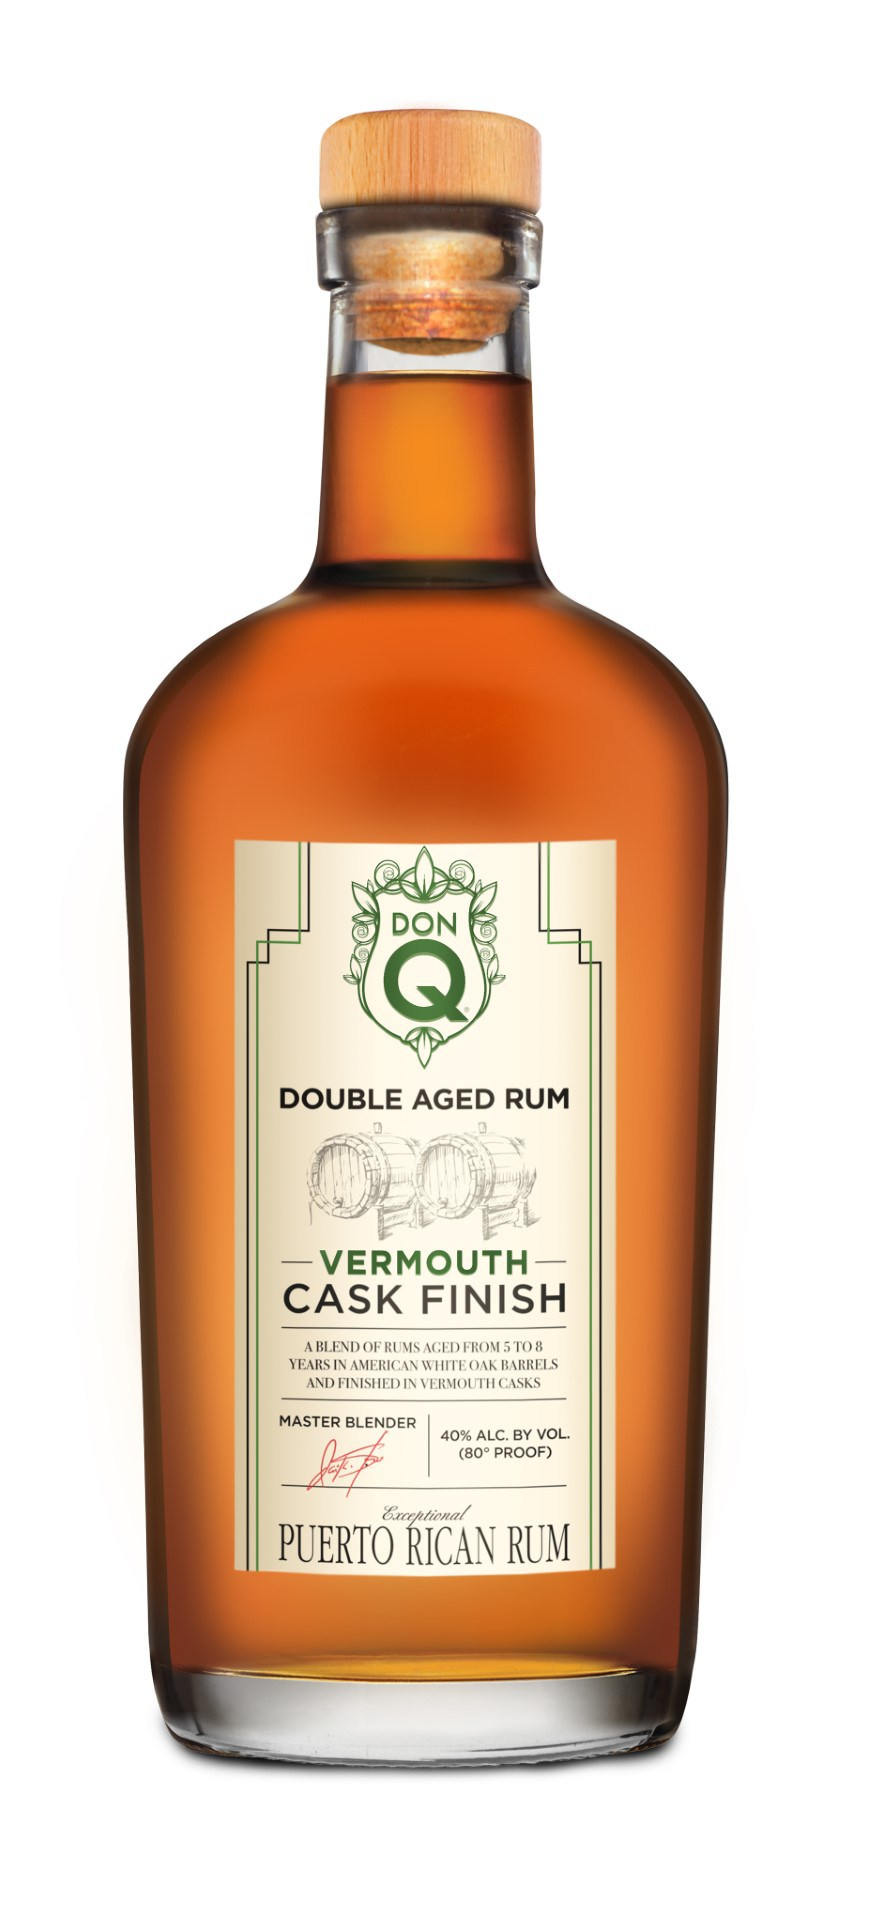 Confezione regalo Double Aged Rum Vermouth Cask Finish DonQ